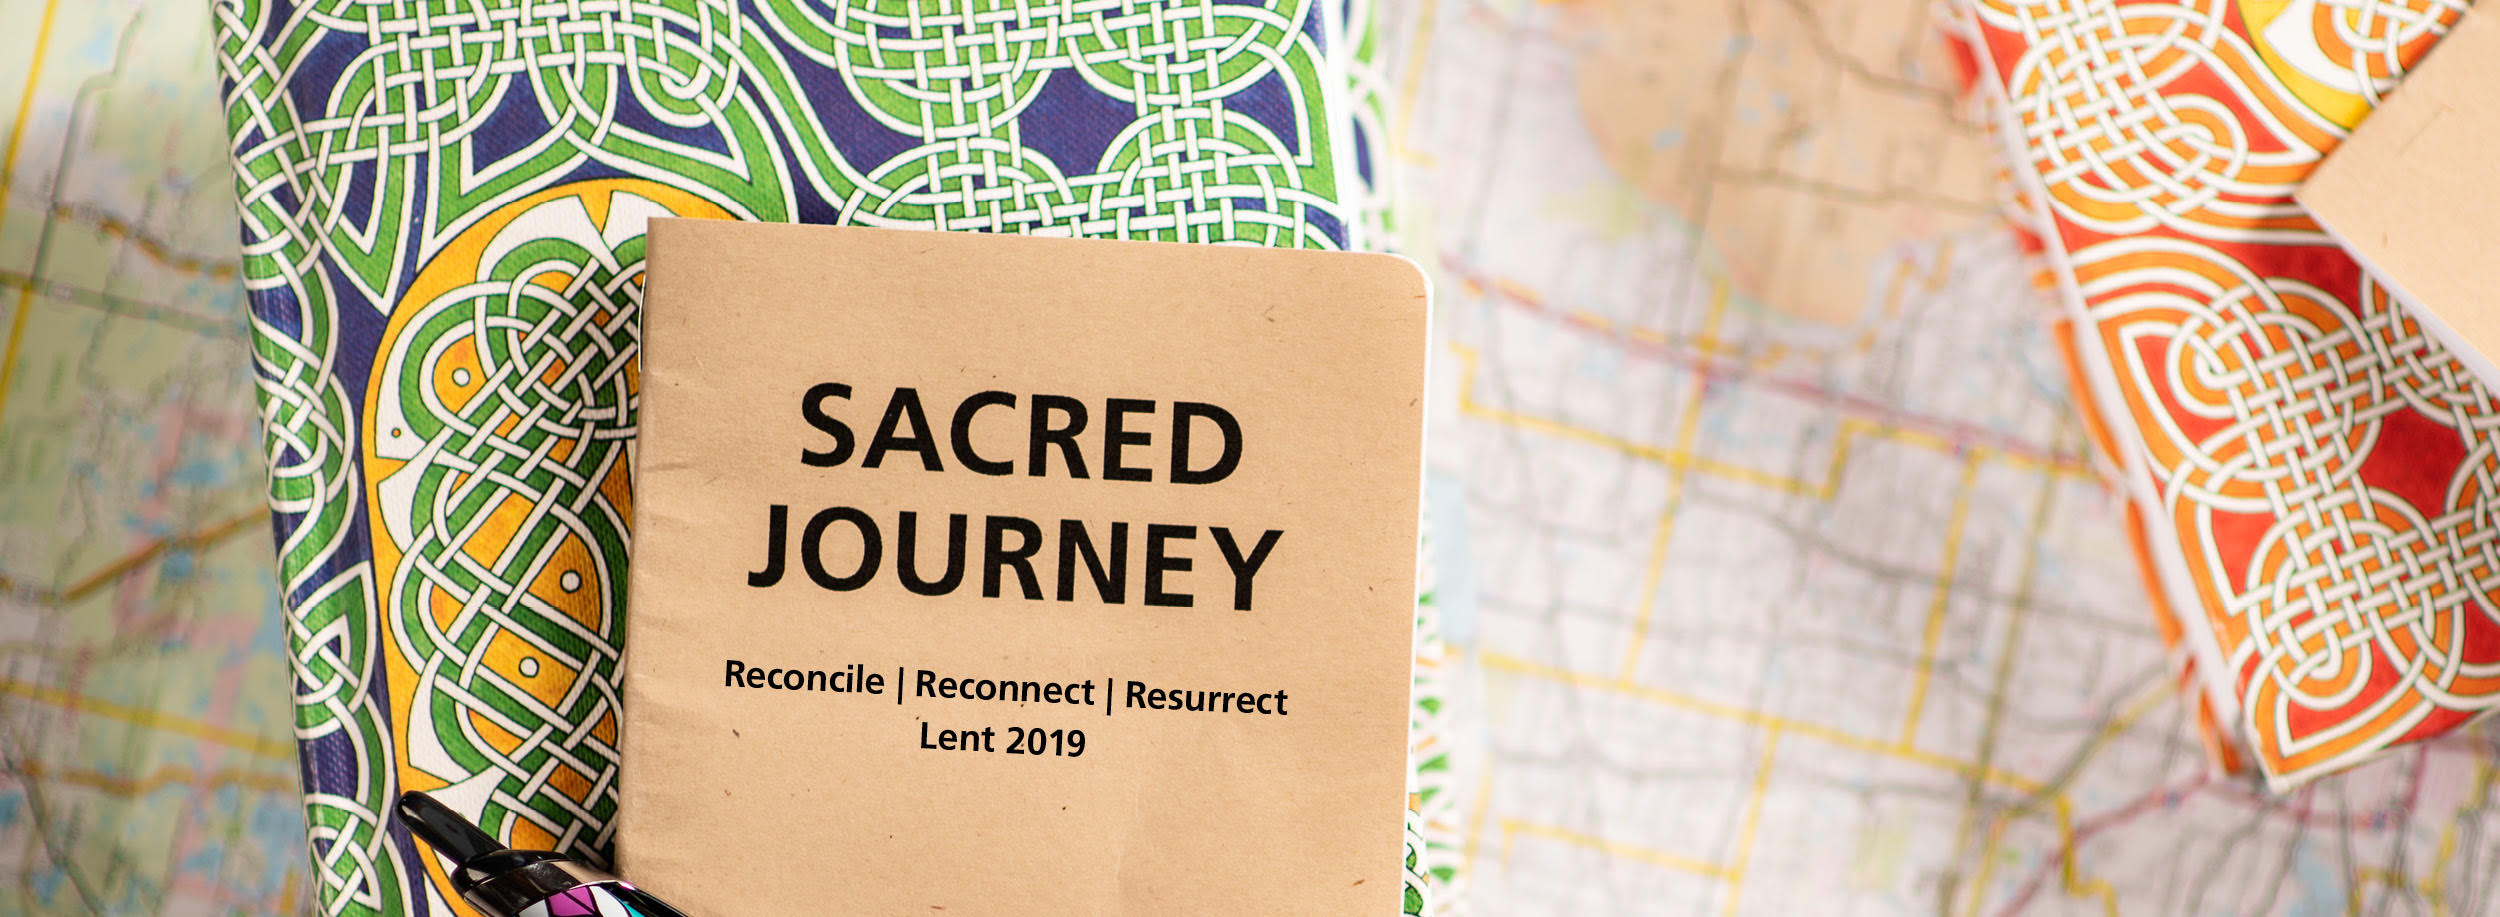 Sacred Journey Slider